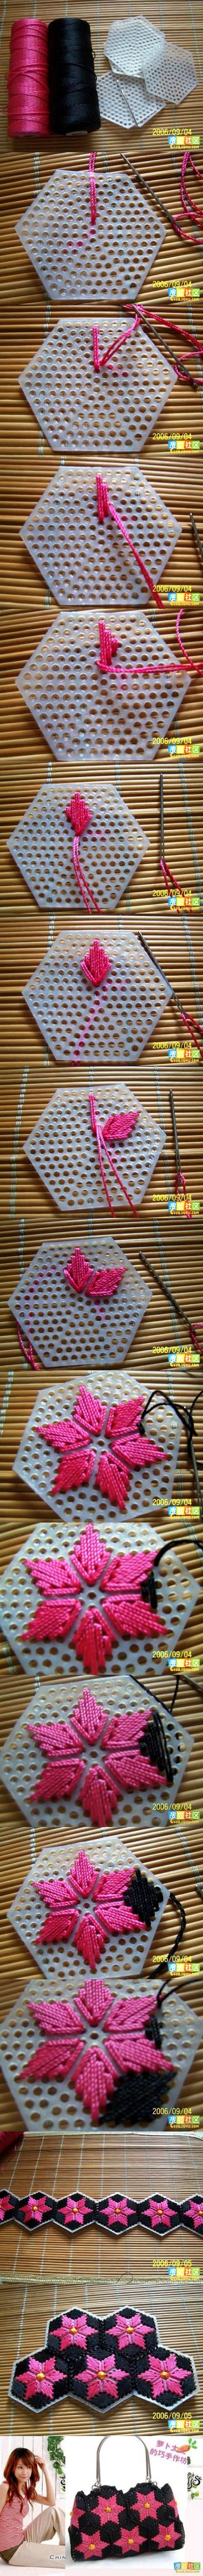 DIY-Pretty-Handbag-from-Stitch-Plastic-Canvas